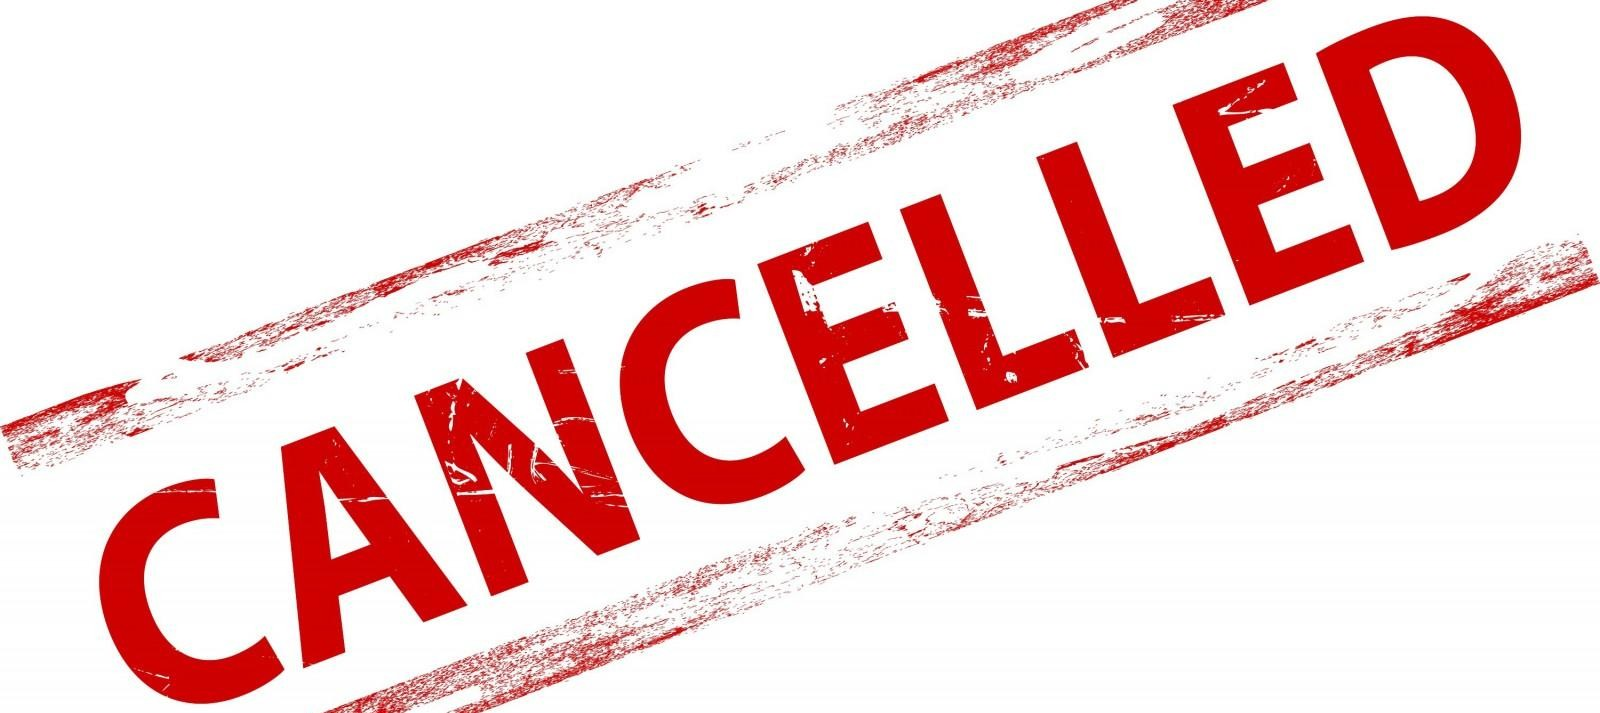 How Not to Minimize Cancellations [Rant]